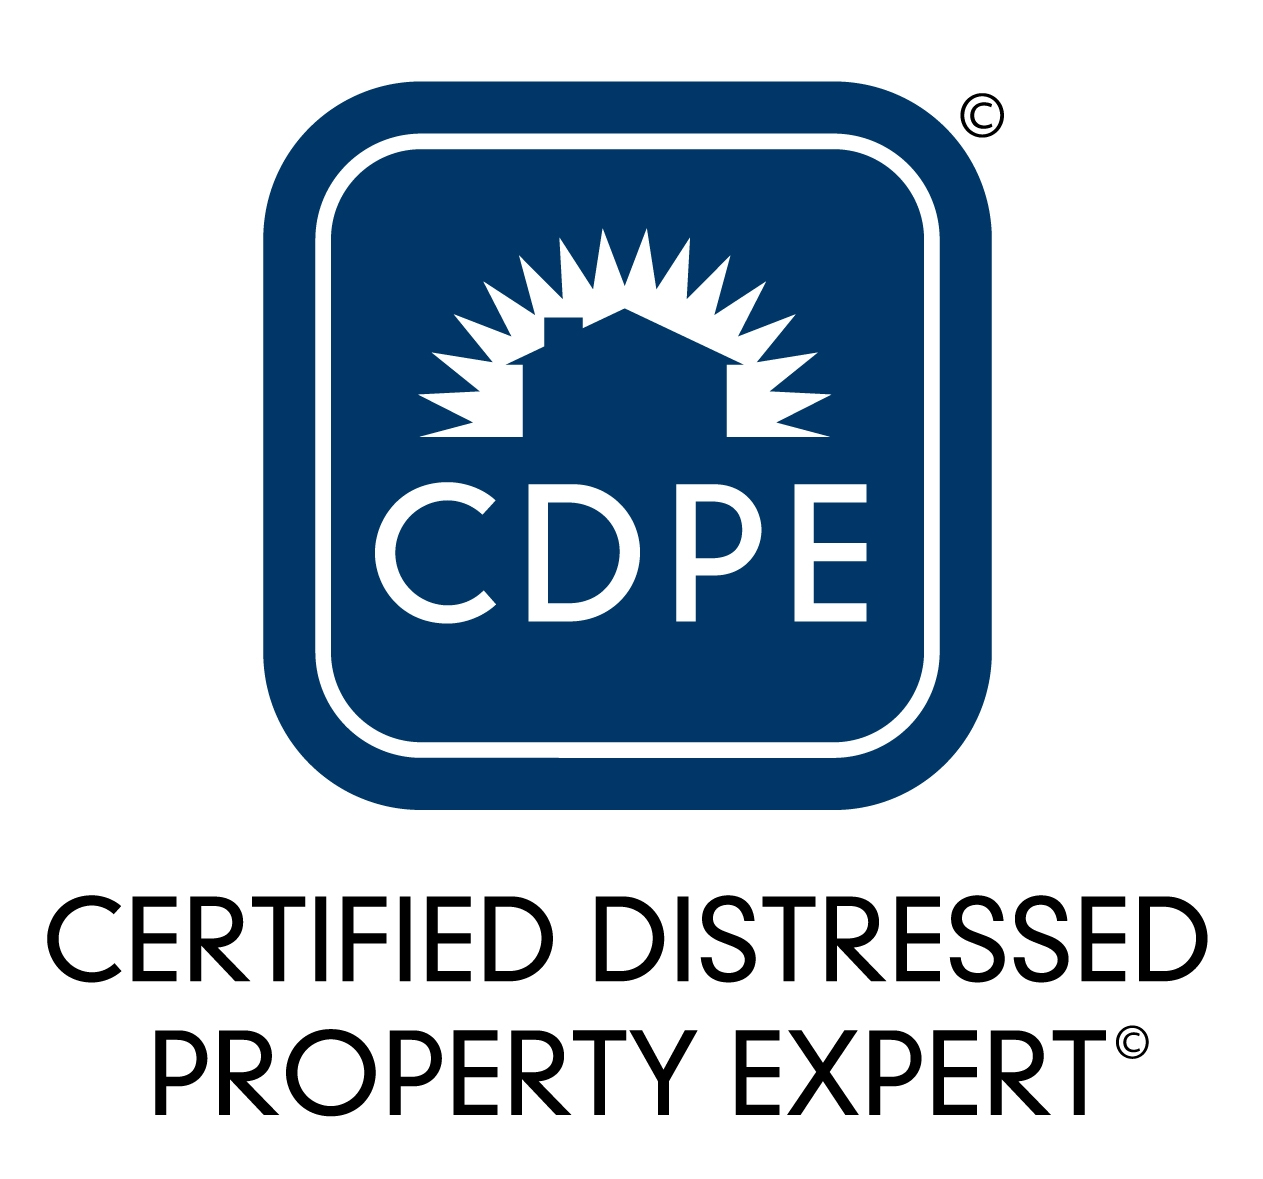 Distressed Property Expert